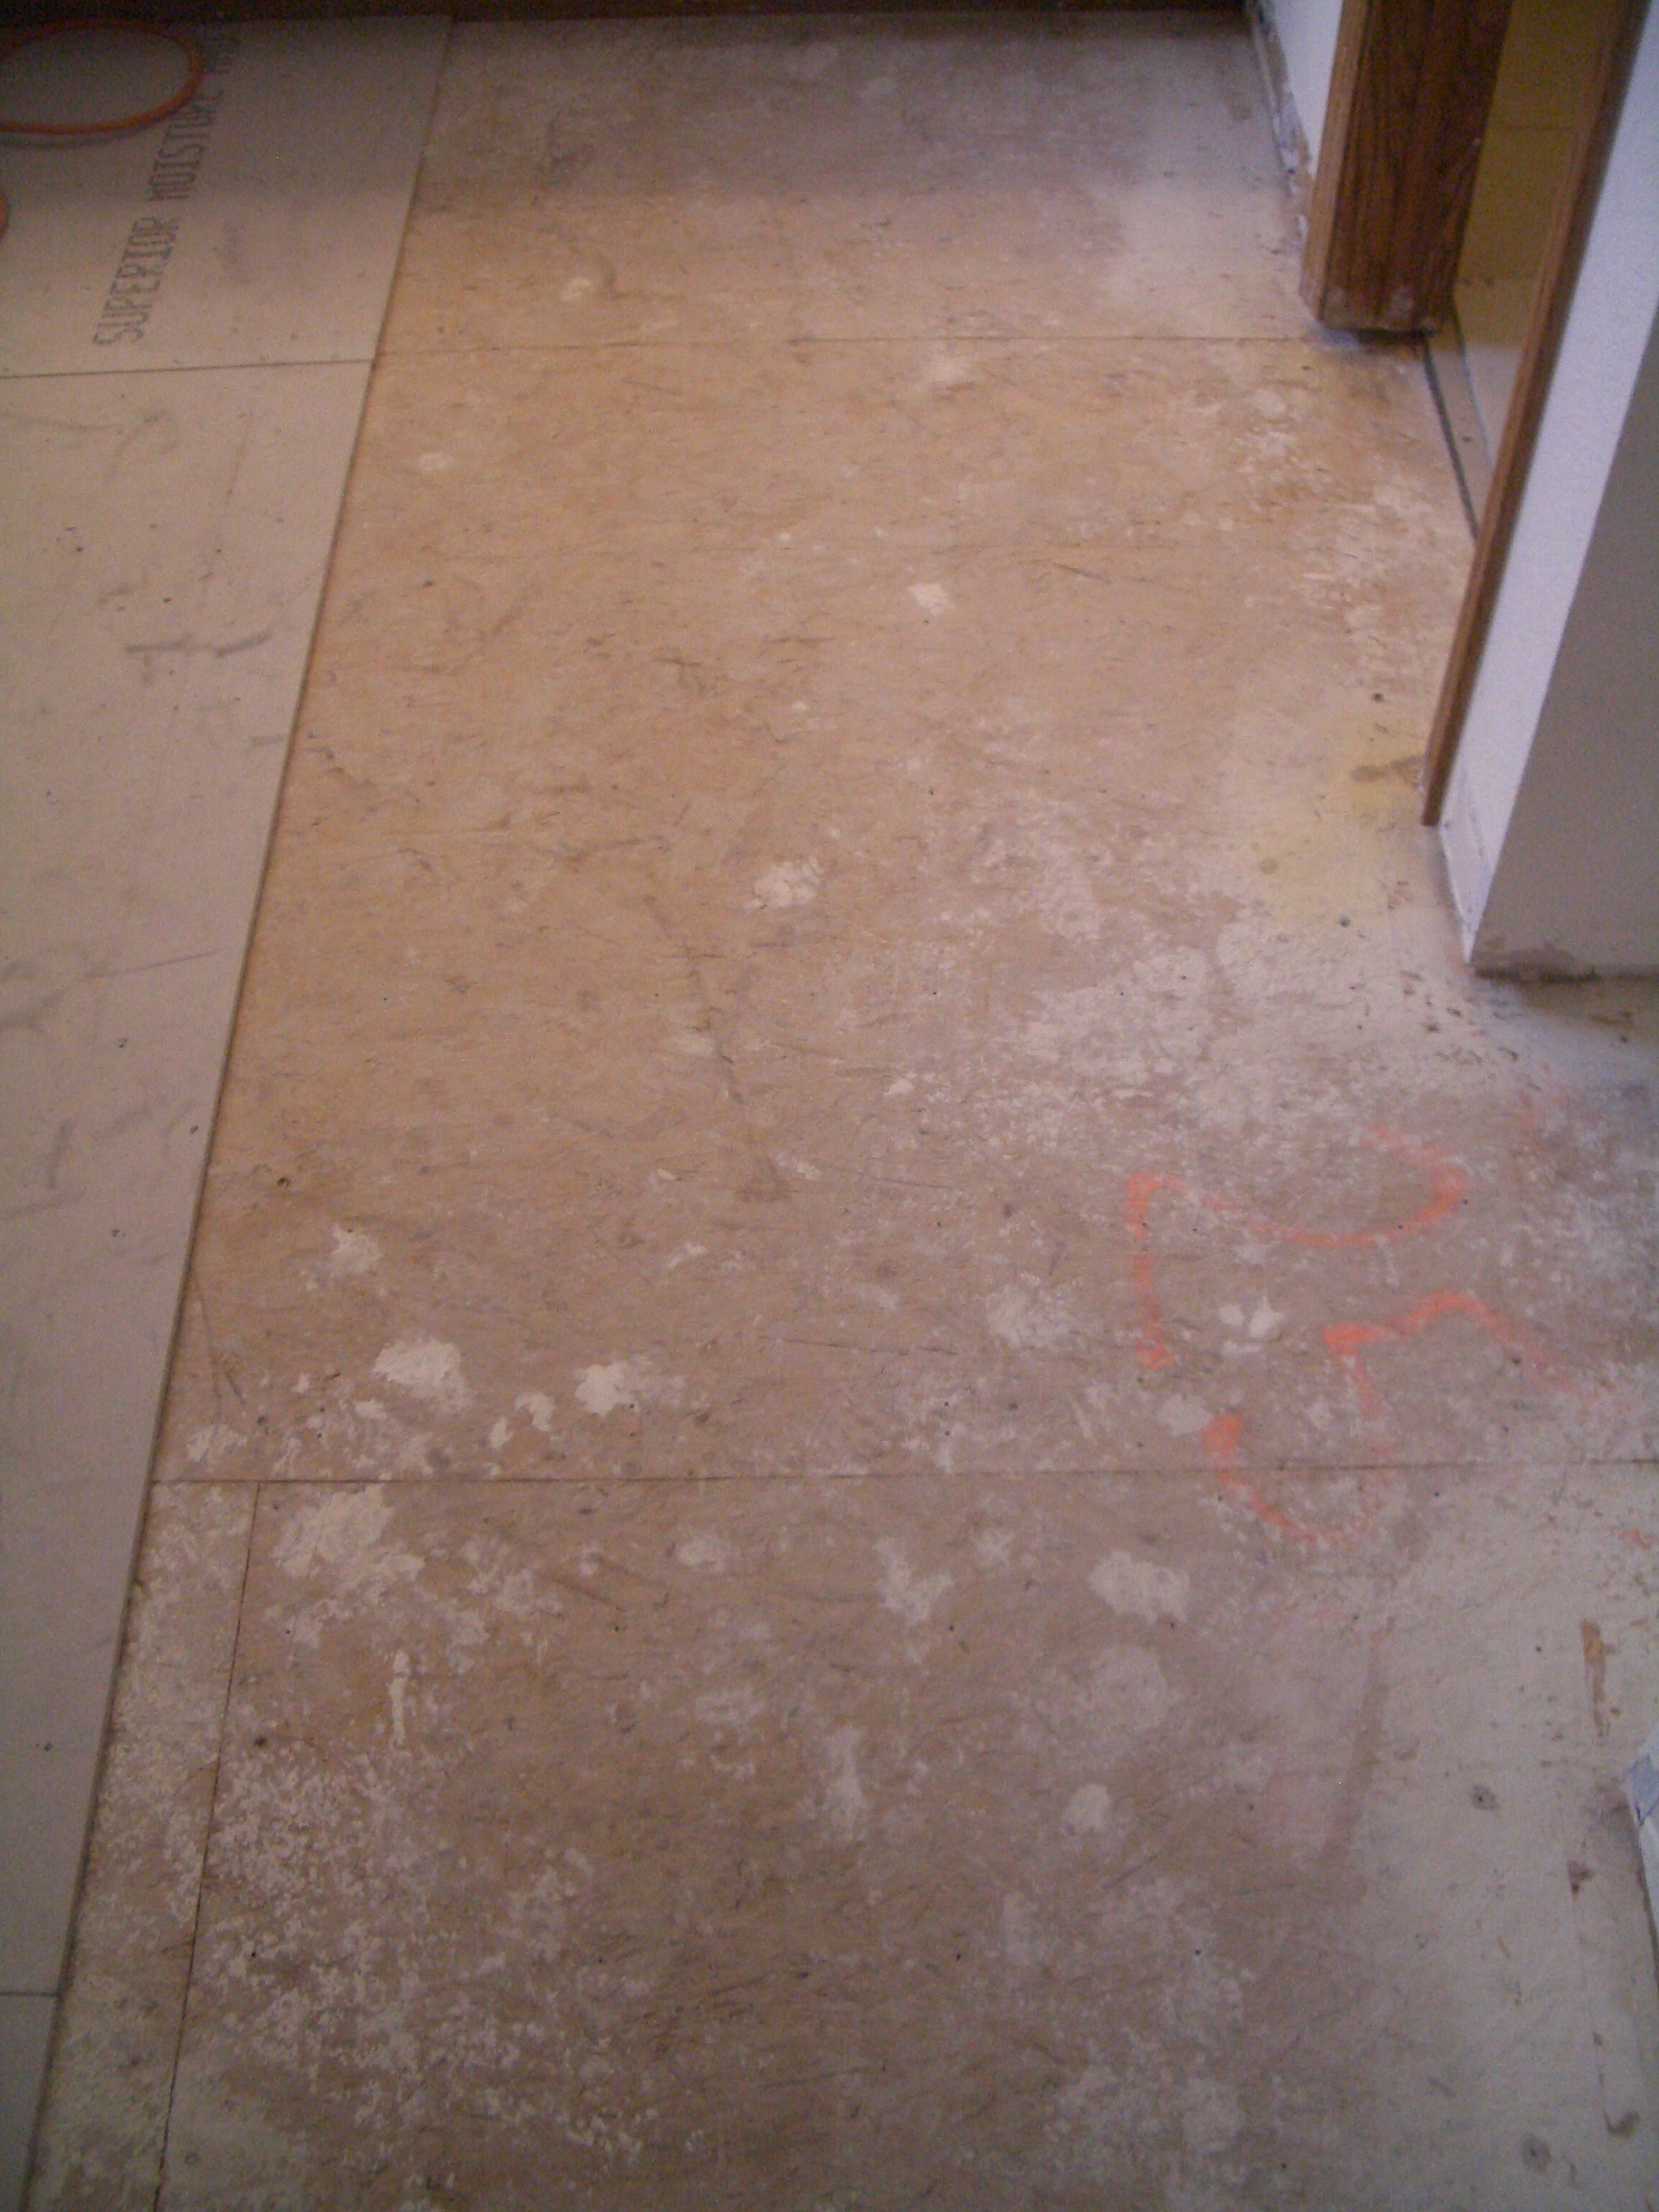 To install cement backerboard for floor tile dry fitting backerboard on floor dailygadgetfo Image collections